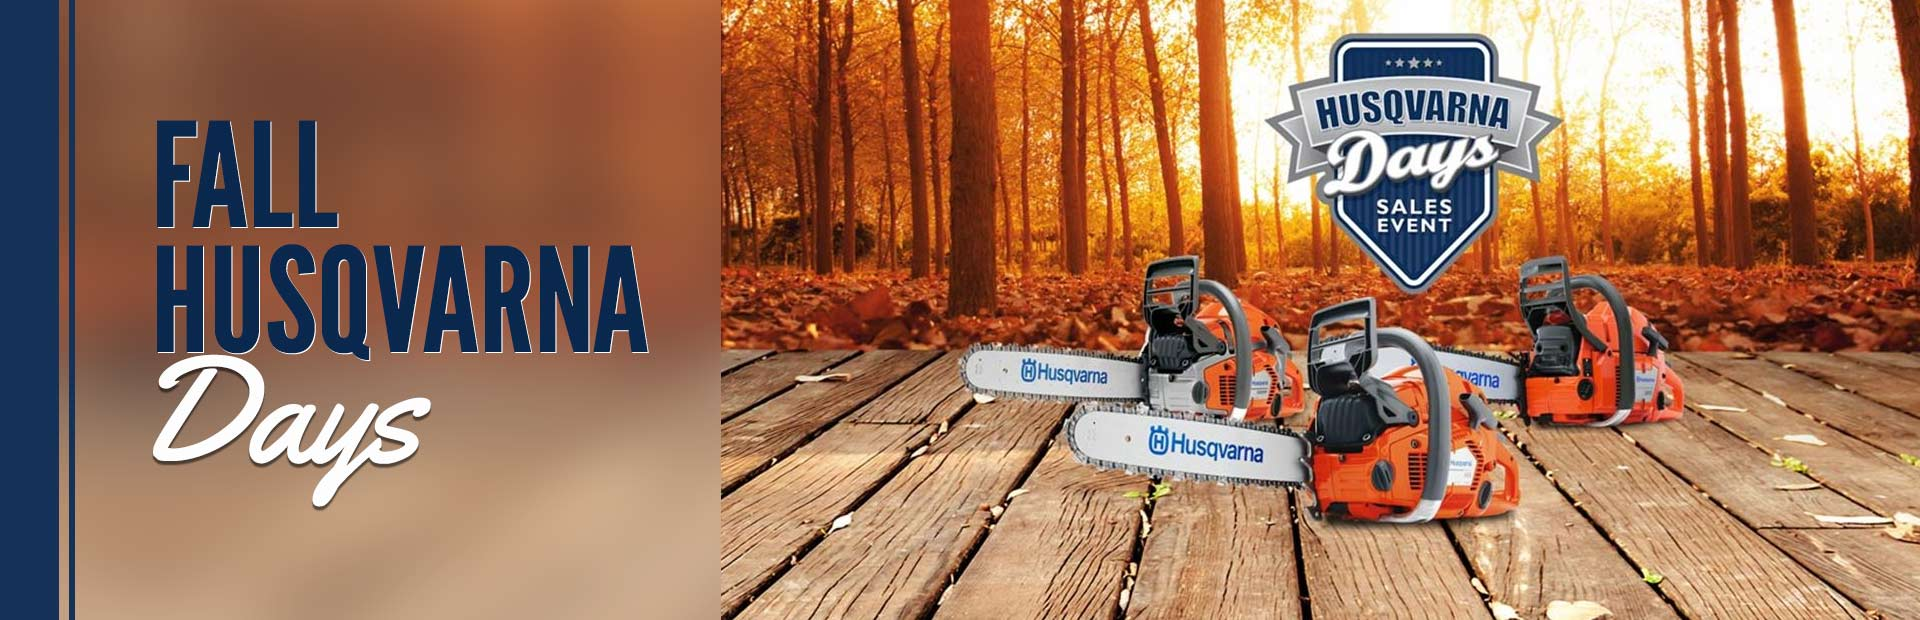 Fall Husqvarna Days